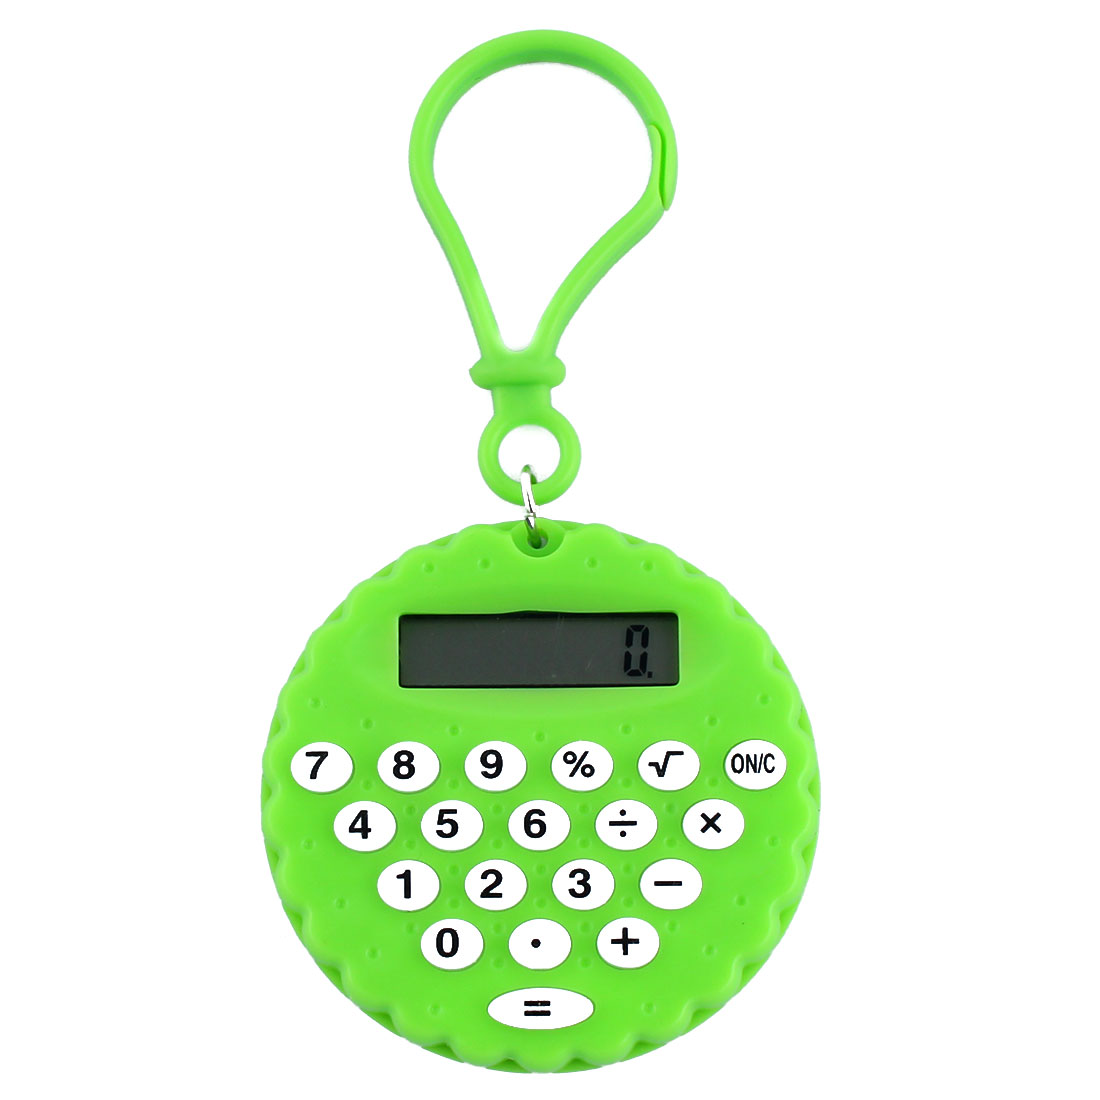 Plastic Biscuit Shape Portable LCD Display 8 Digits Calculator Key Chain Green